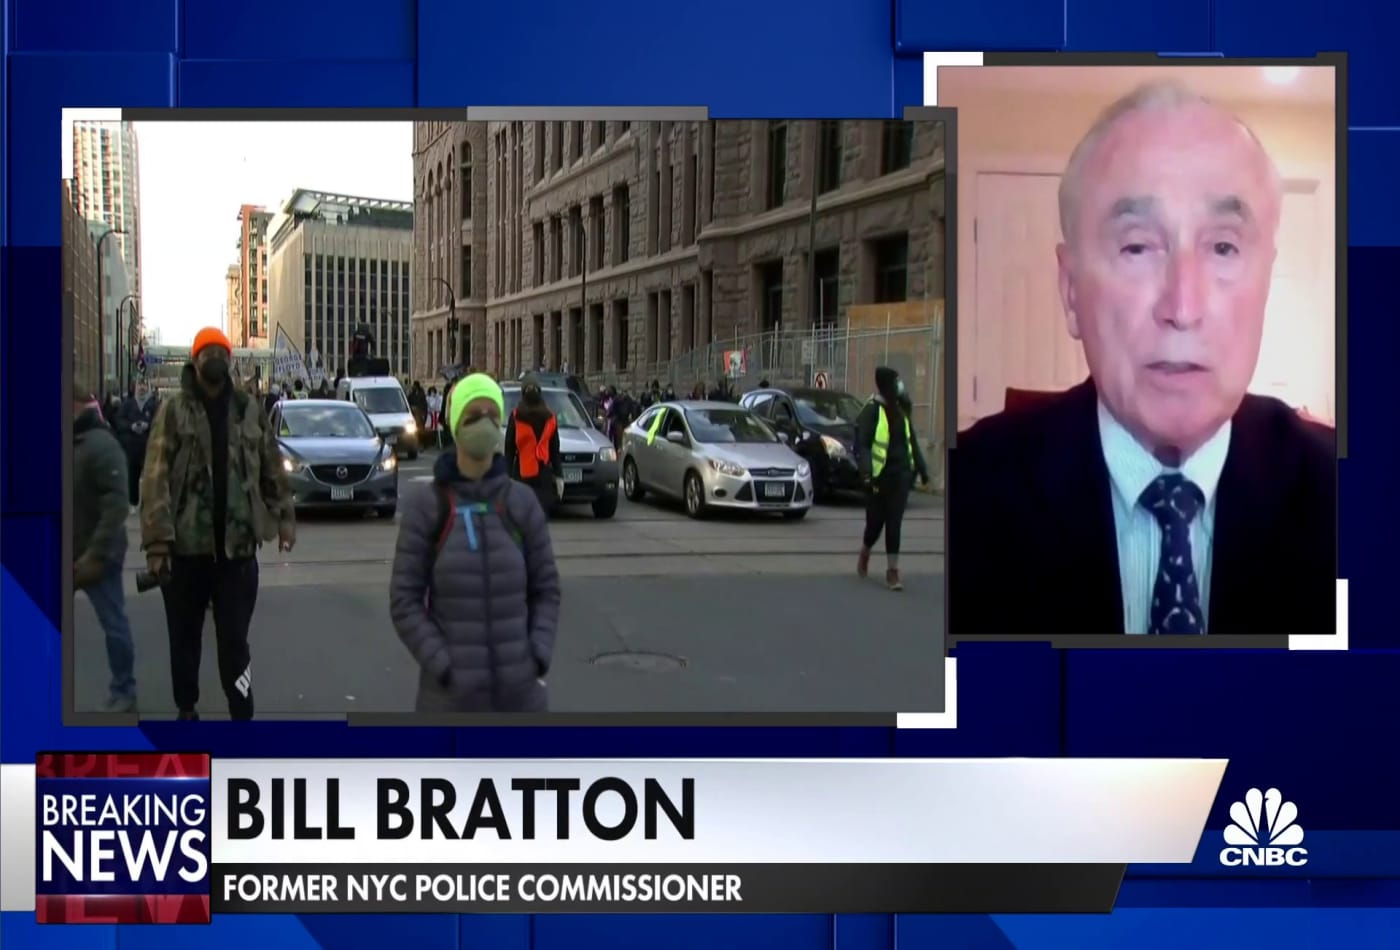 Former NYC police commissioner says verdict will 'accelerate' change in policing in the U.S.